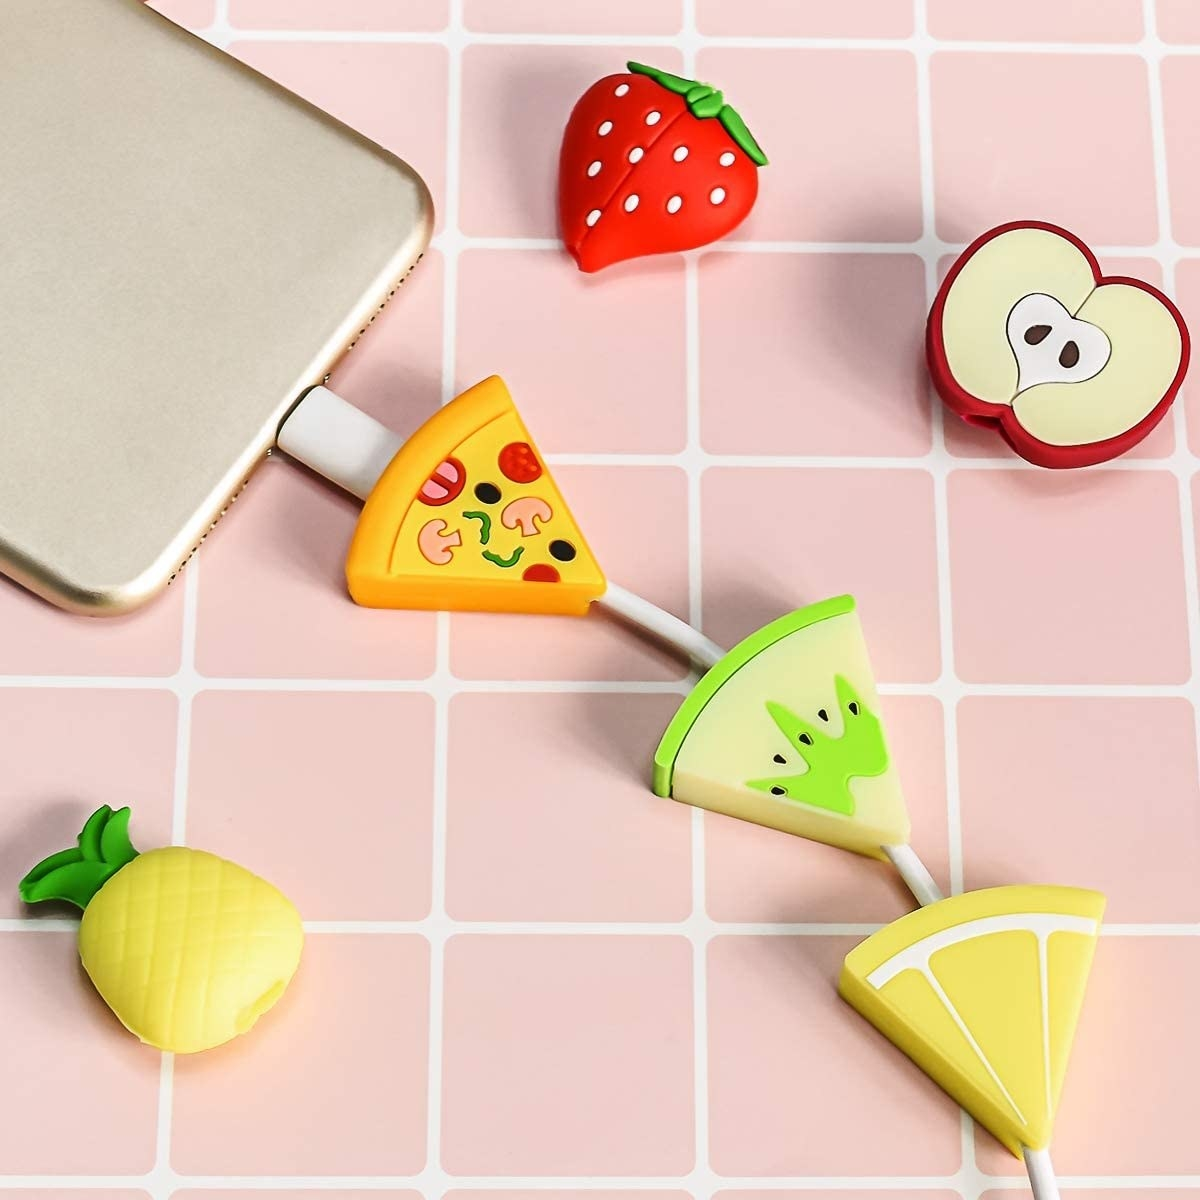 a cellphone with a pizza, apple, and lemon cord charm